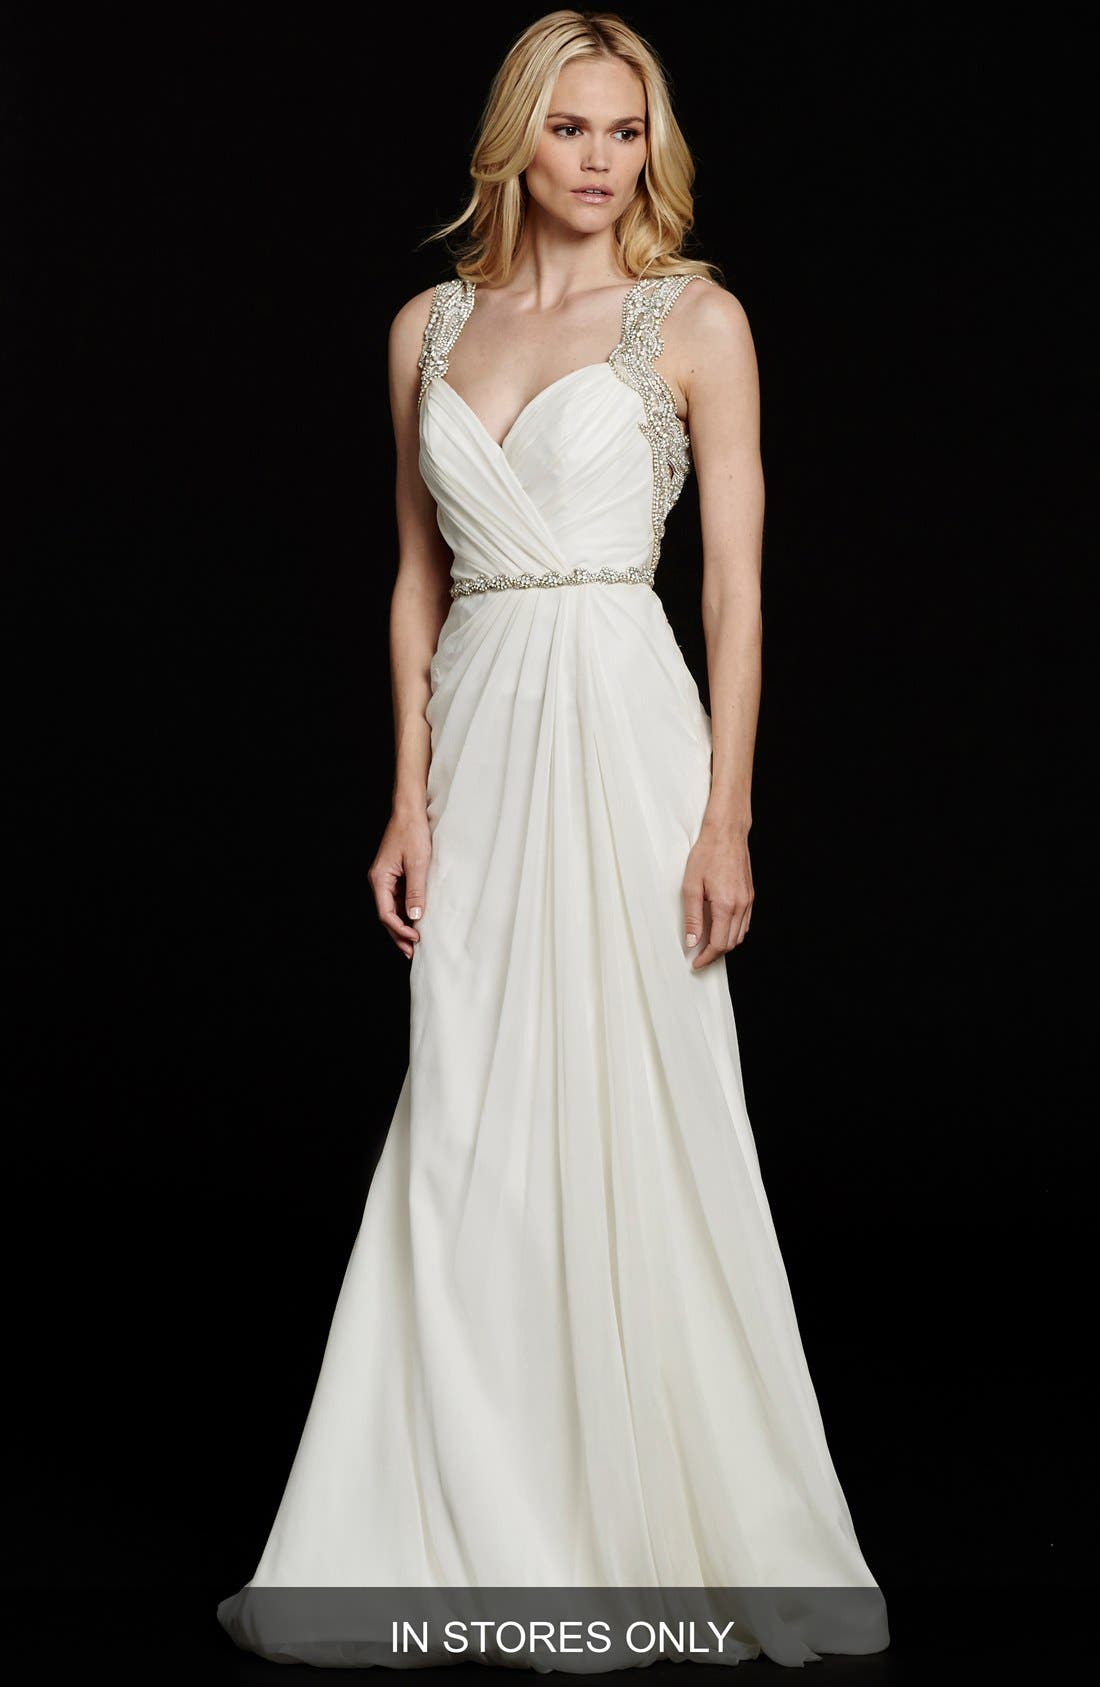 Alternate Image 1 Selected - Hayley Paige 'Portia' Embellished Open Back Chiffon Gown (In Stores Only)